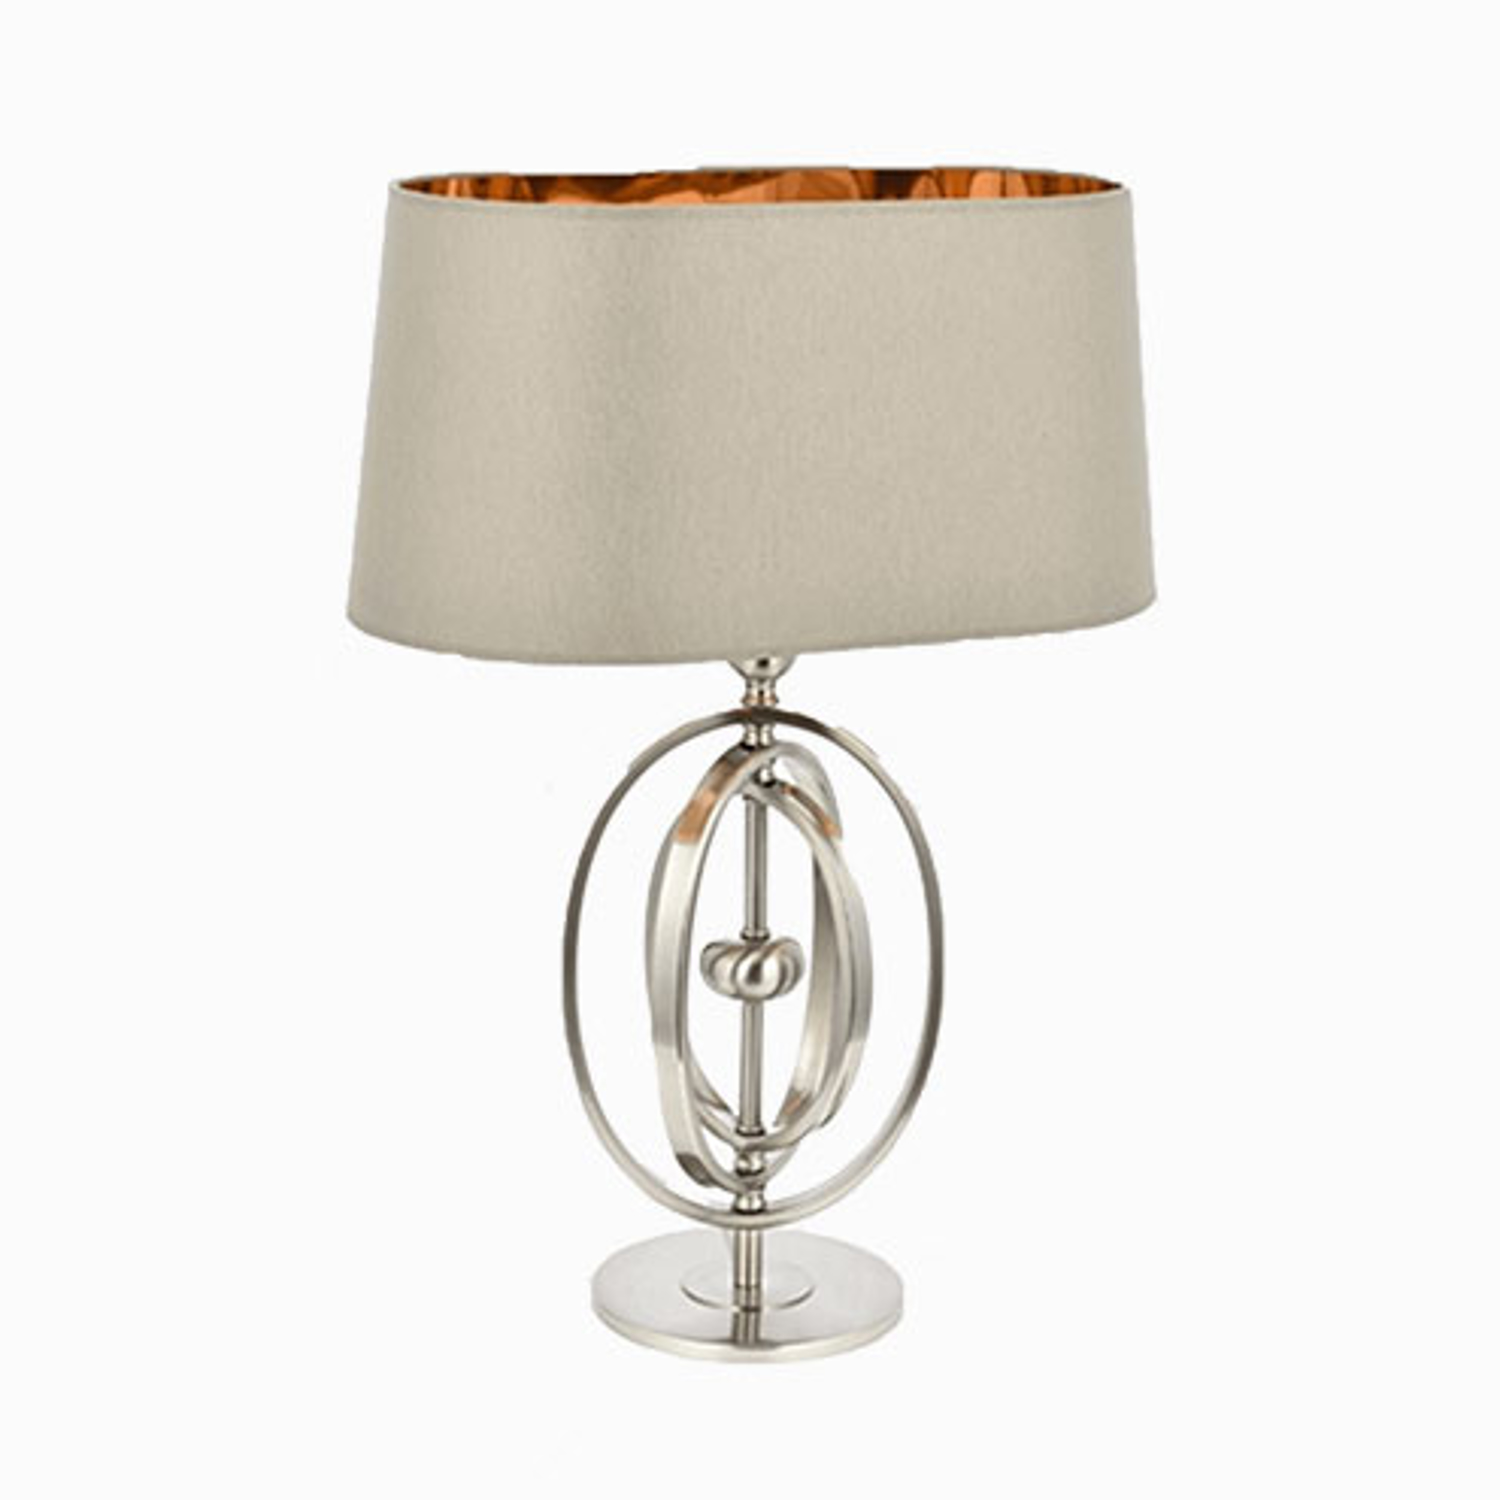 Picture for category TABLE LAMP